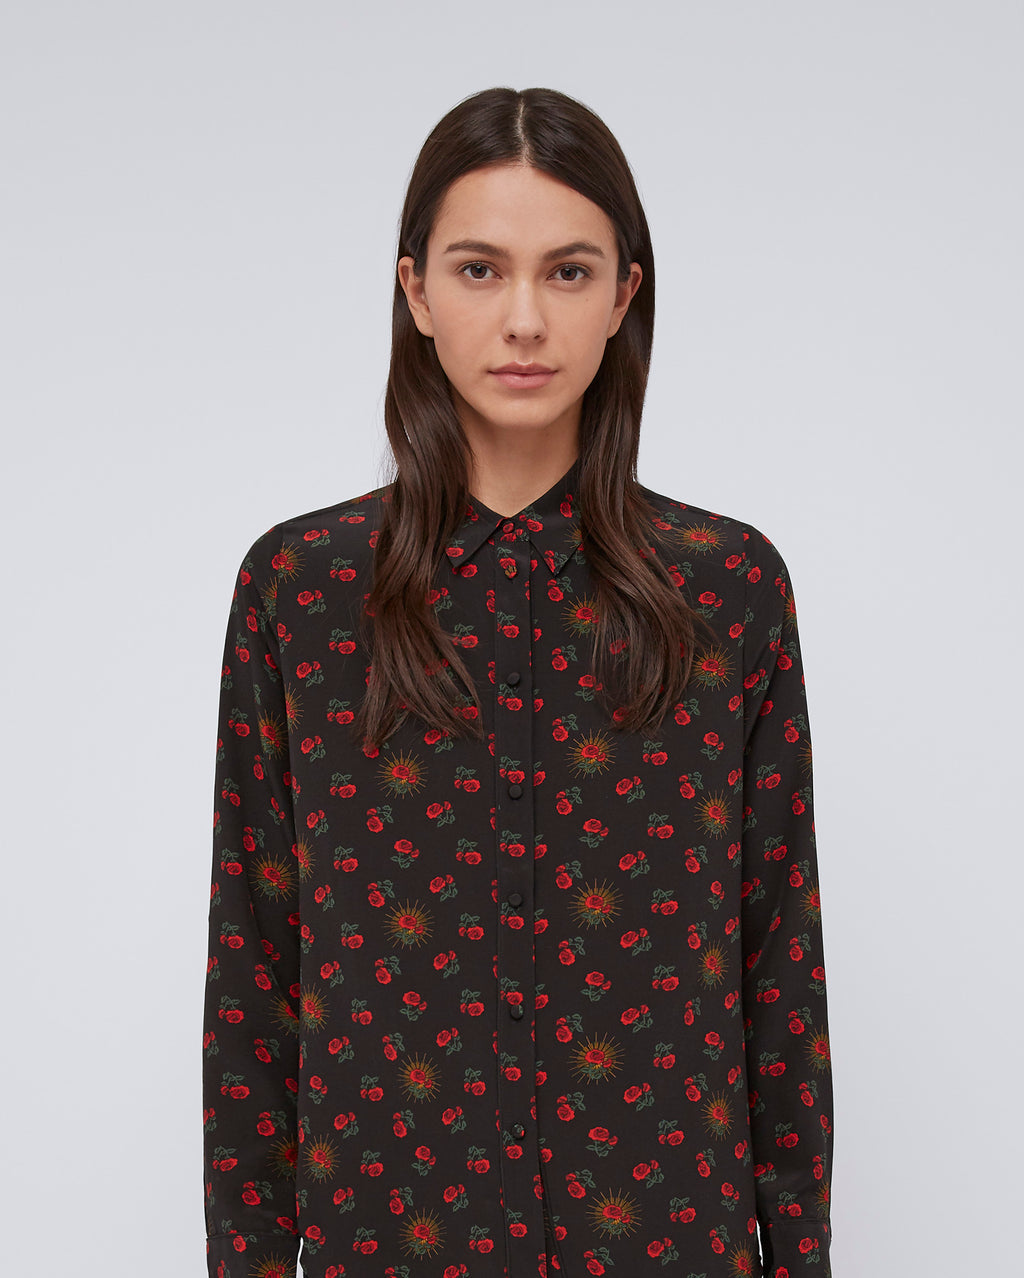 The Nora Shirt in Red Calico Rose